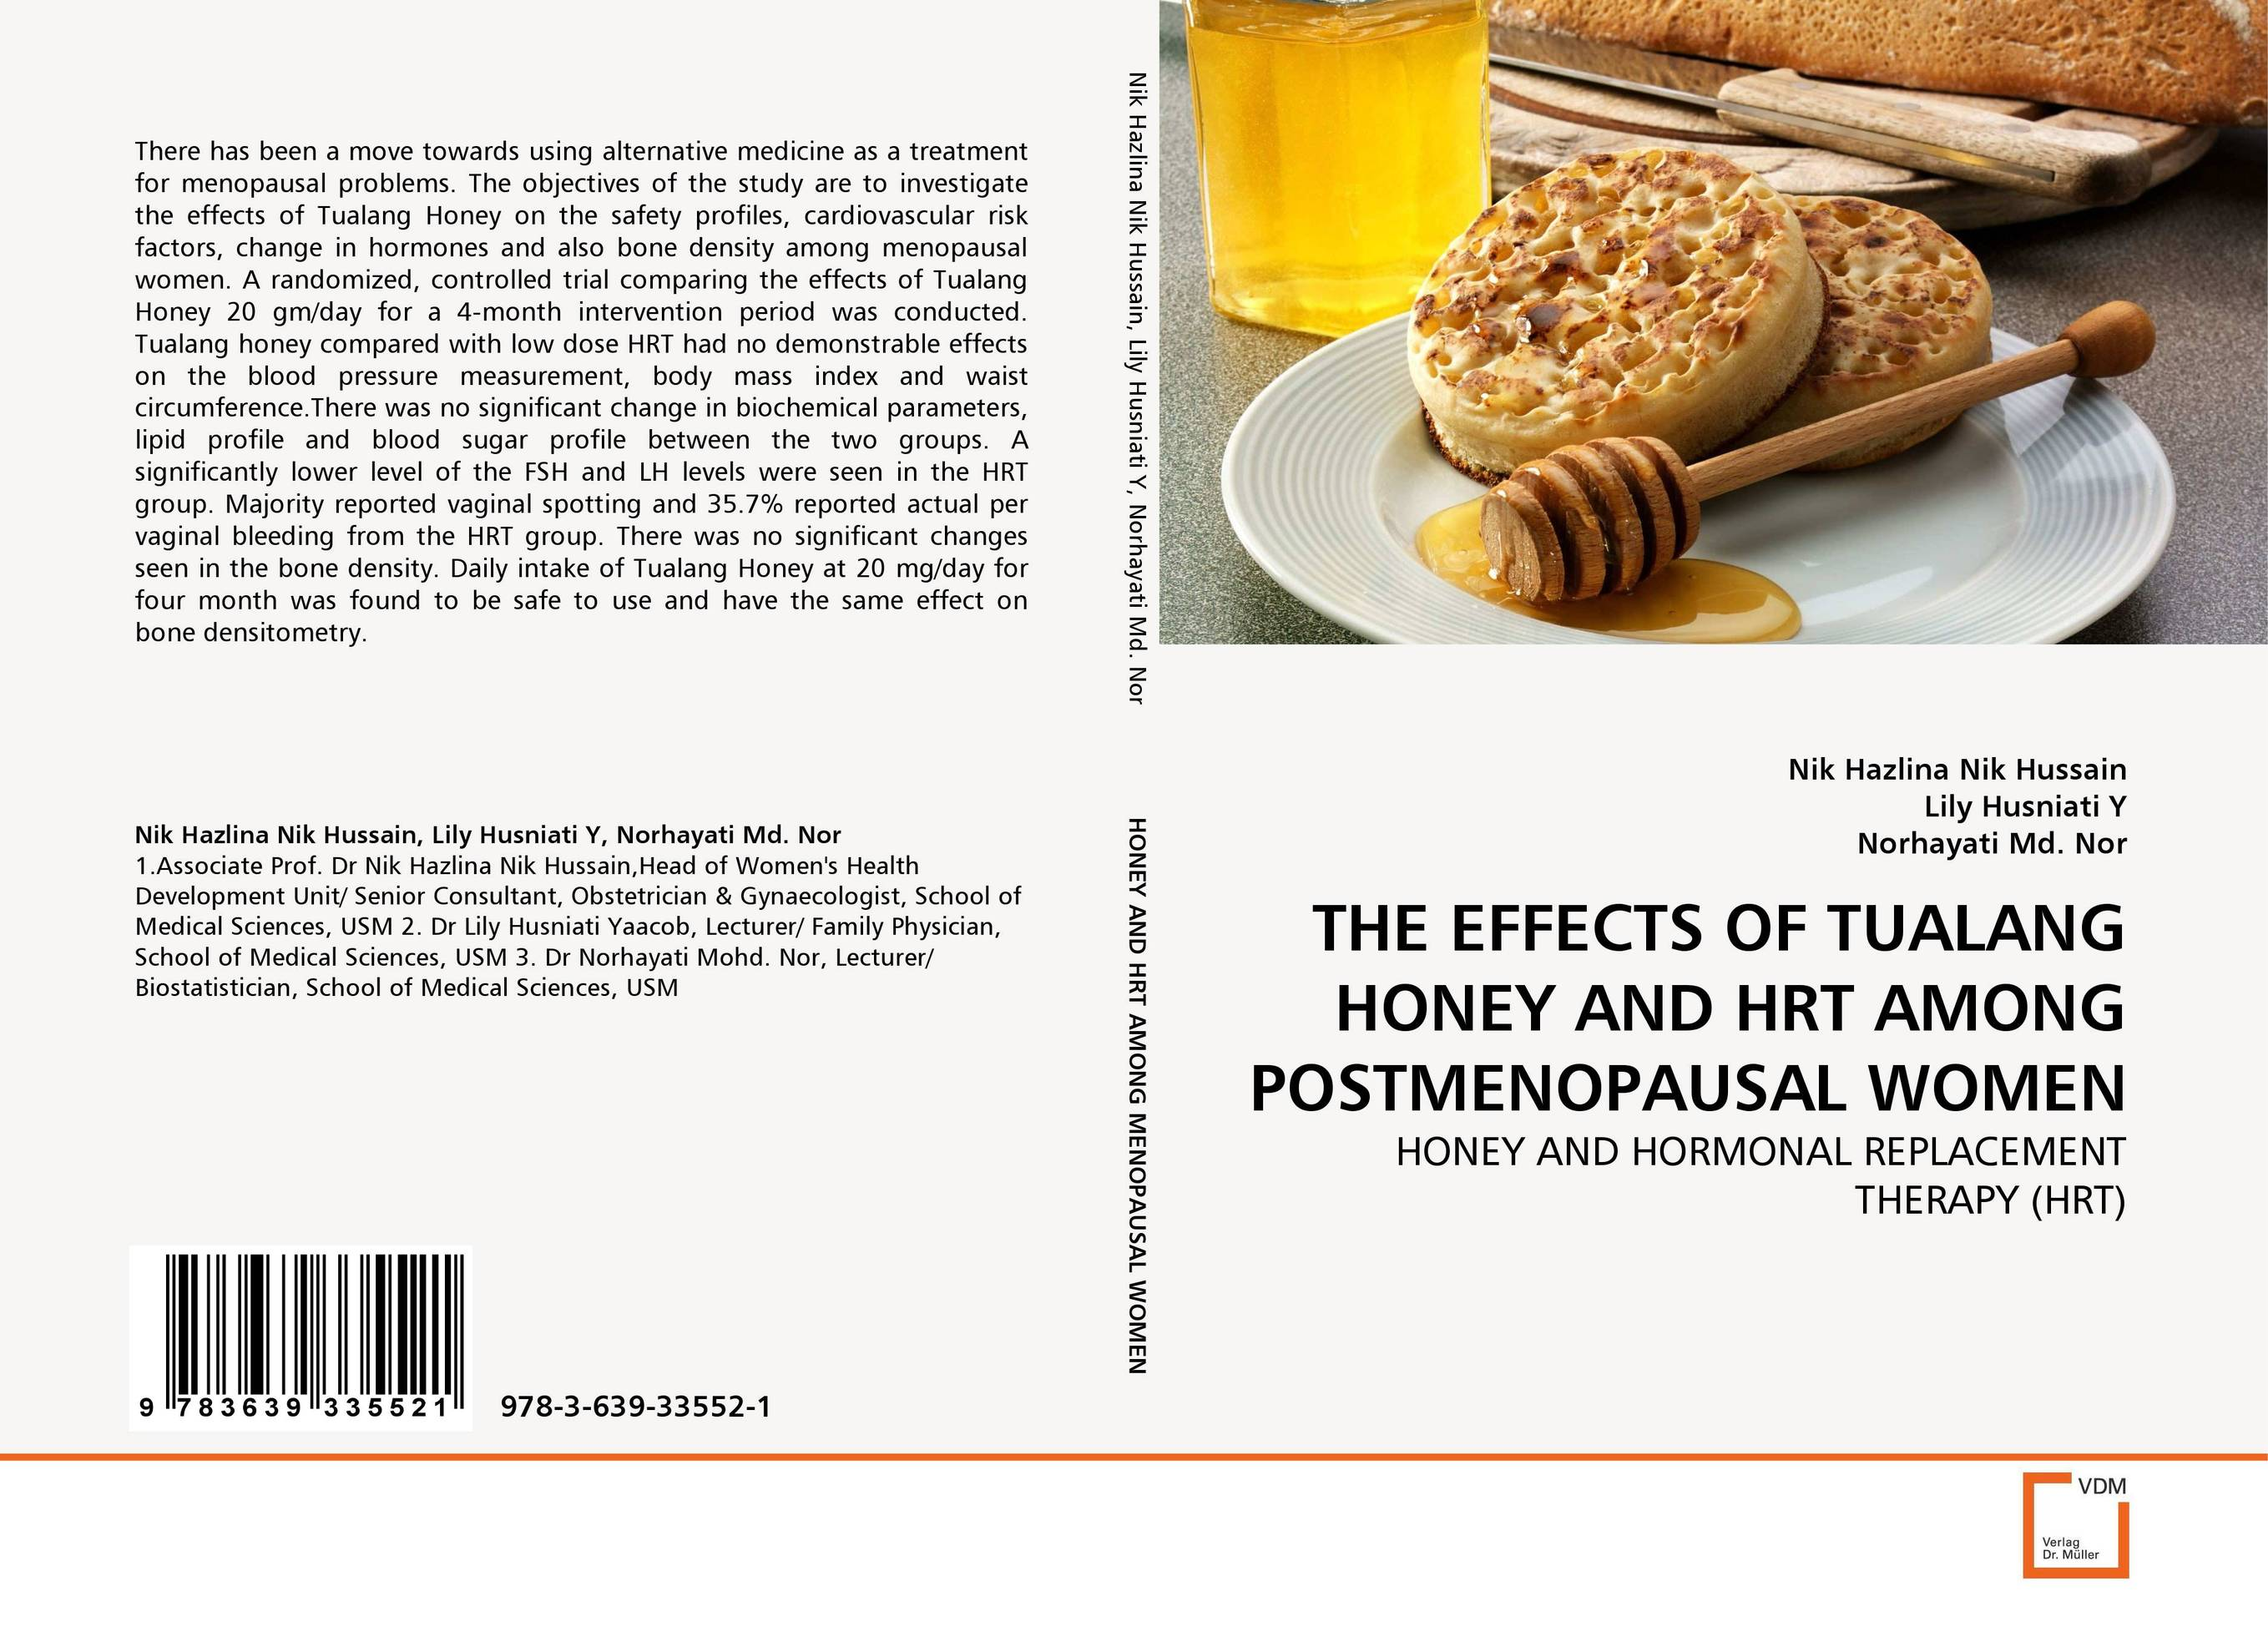 THE EFFECTS OF TUALANG HONEY AND HRT AMONG POSTMENOPAUSAL WOMEN